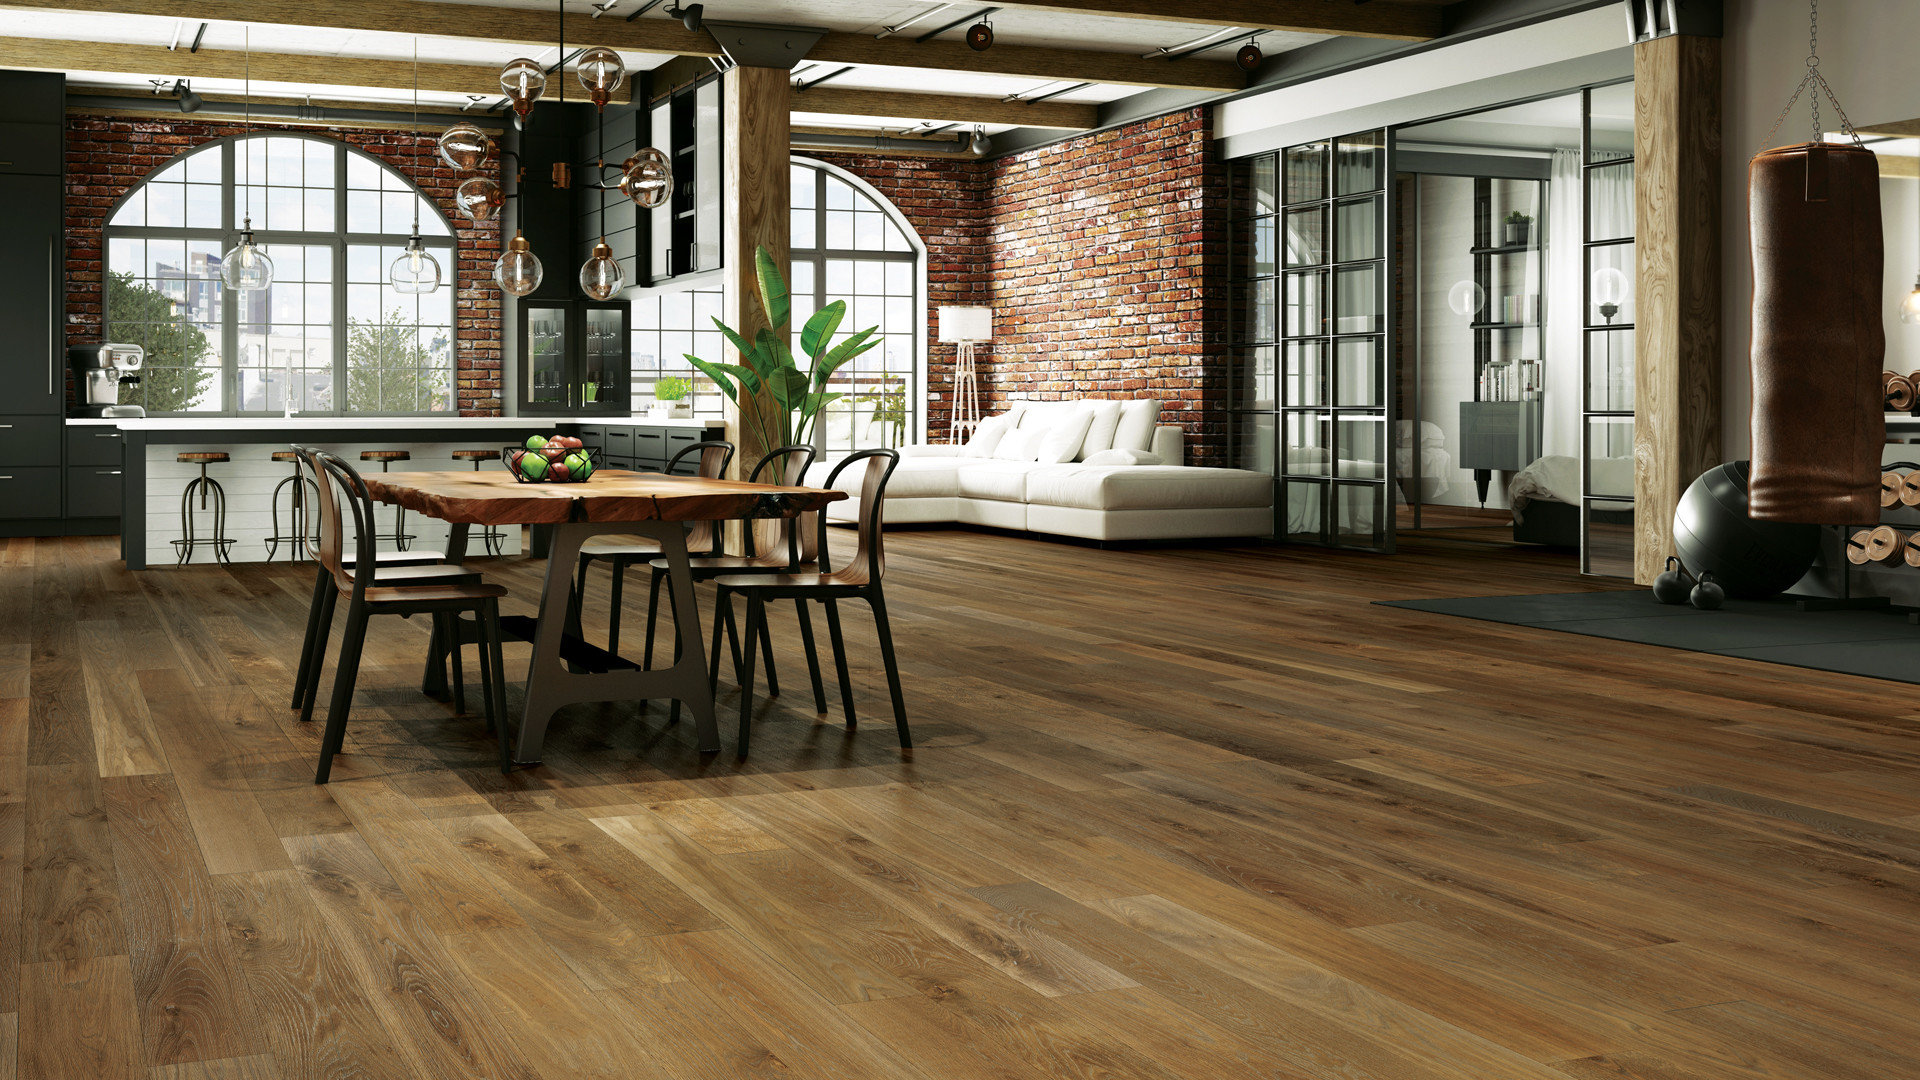 wide plank laminate hardwood flooring of 4 latest hardwood flooring trends of 2018 lauzon flooring throughout combined with a wire brushed texture and an ultra matte sheen these new 7a½ wide white oak hardwood floors will definitely add character to your home